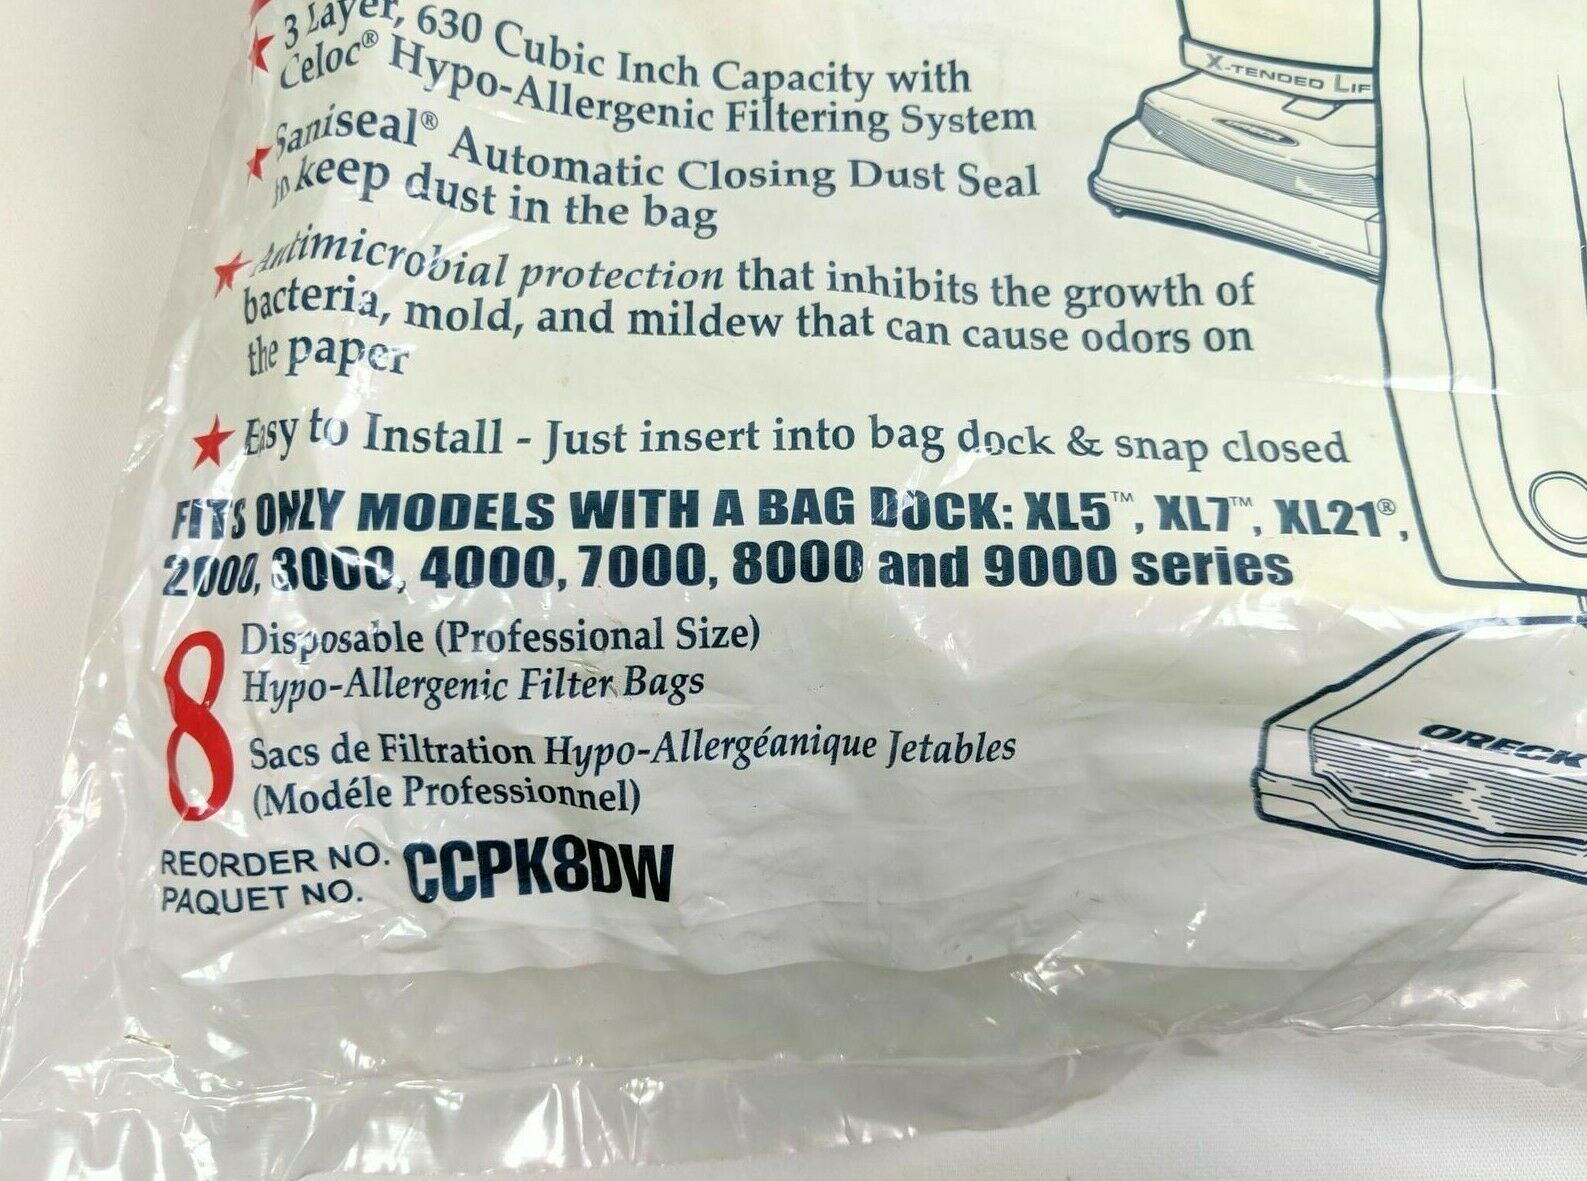 Oreck Vacuum Cleaner Bags Type CC For Uprights 7 Count (wirshf)   image 2